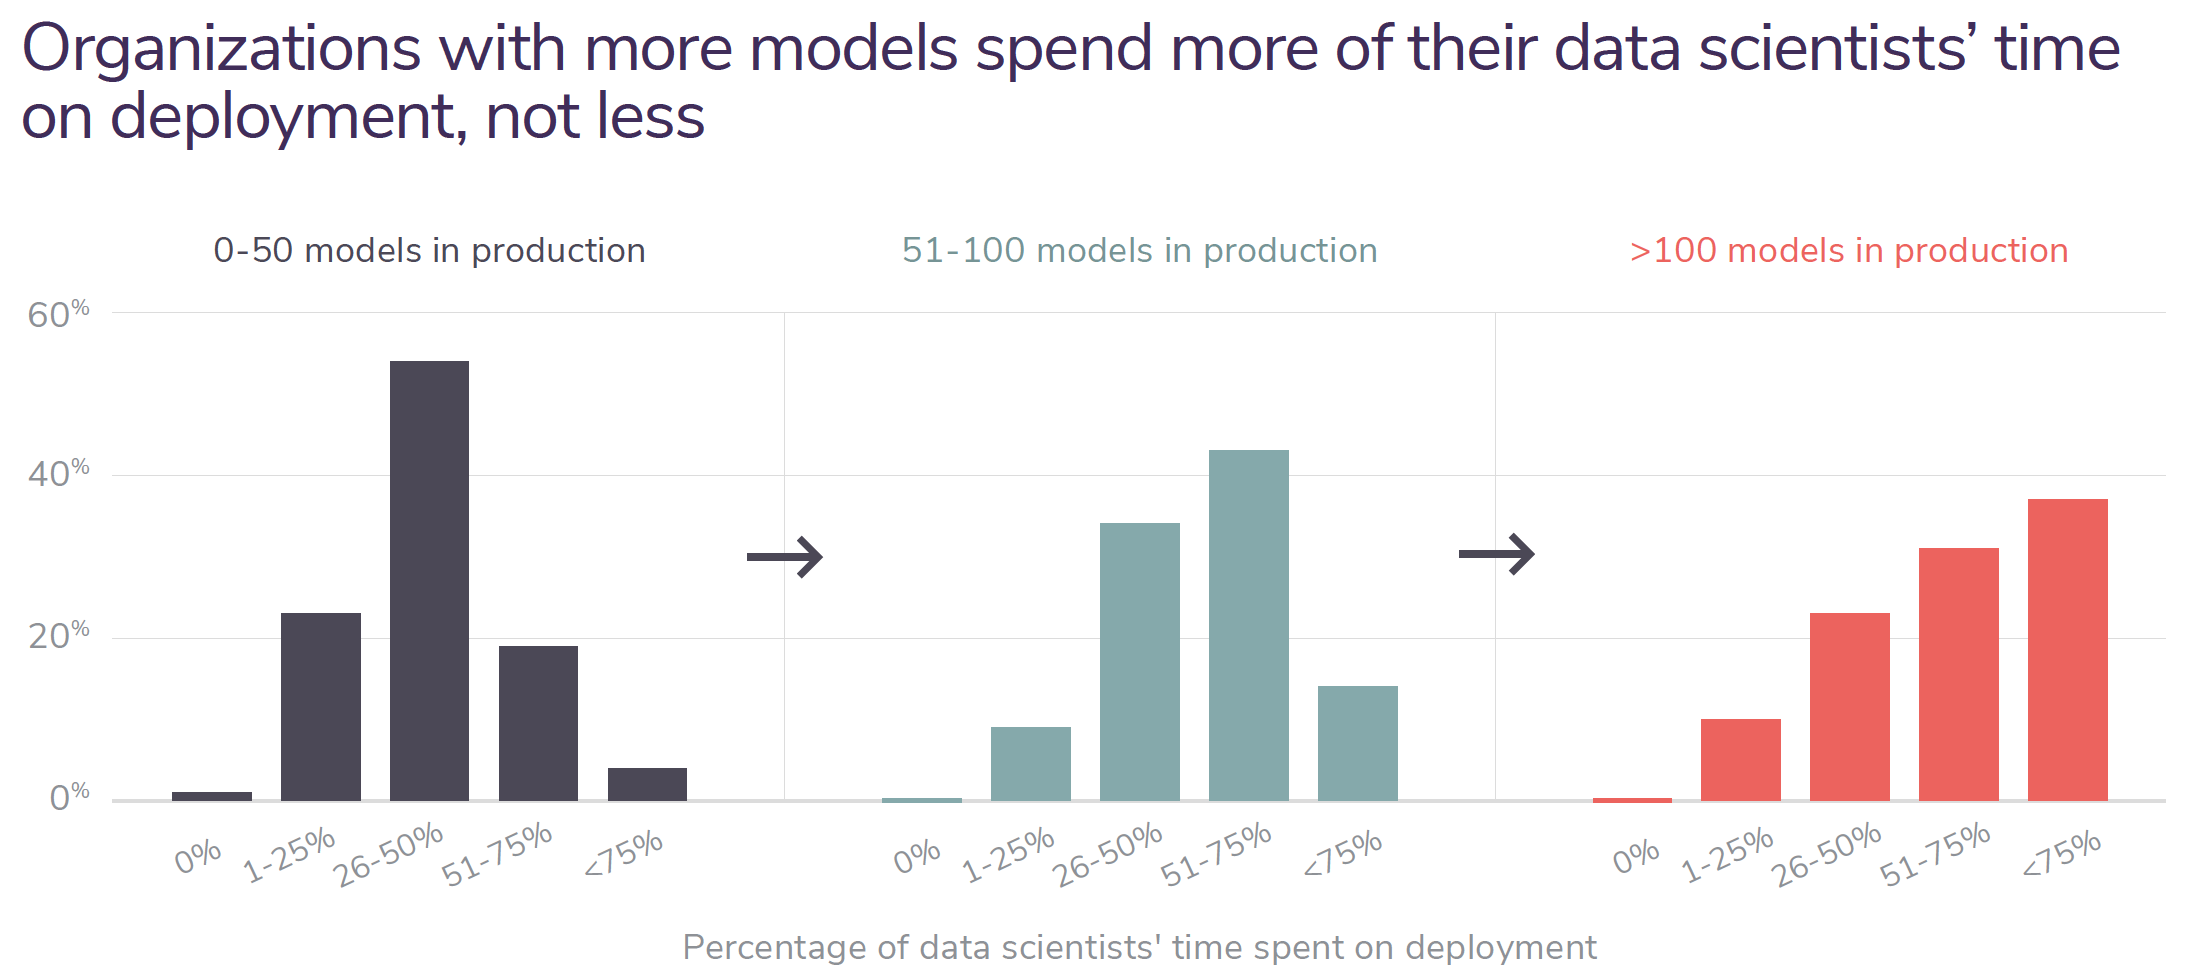 Organizations with more models spend more of their data scientists' time on deployment, not less